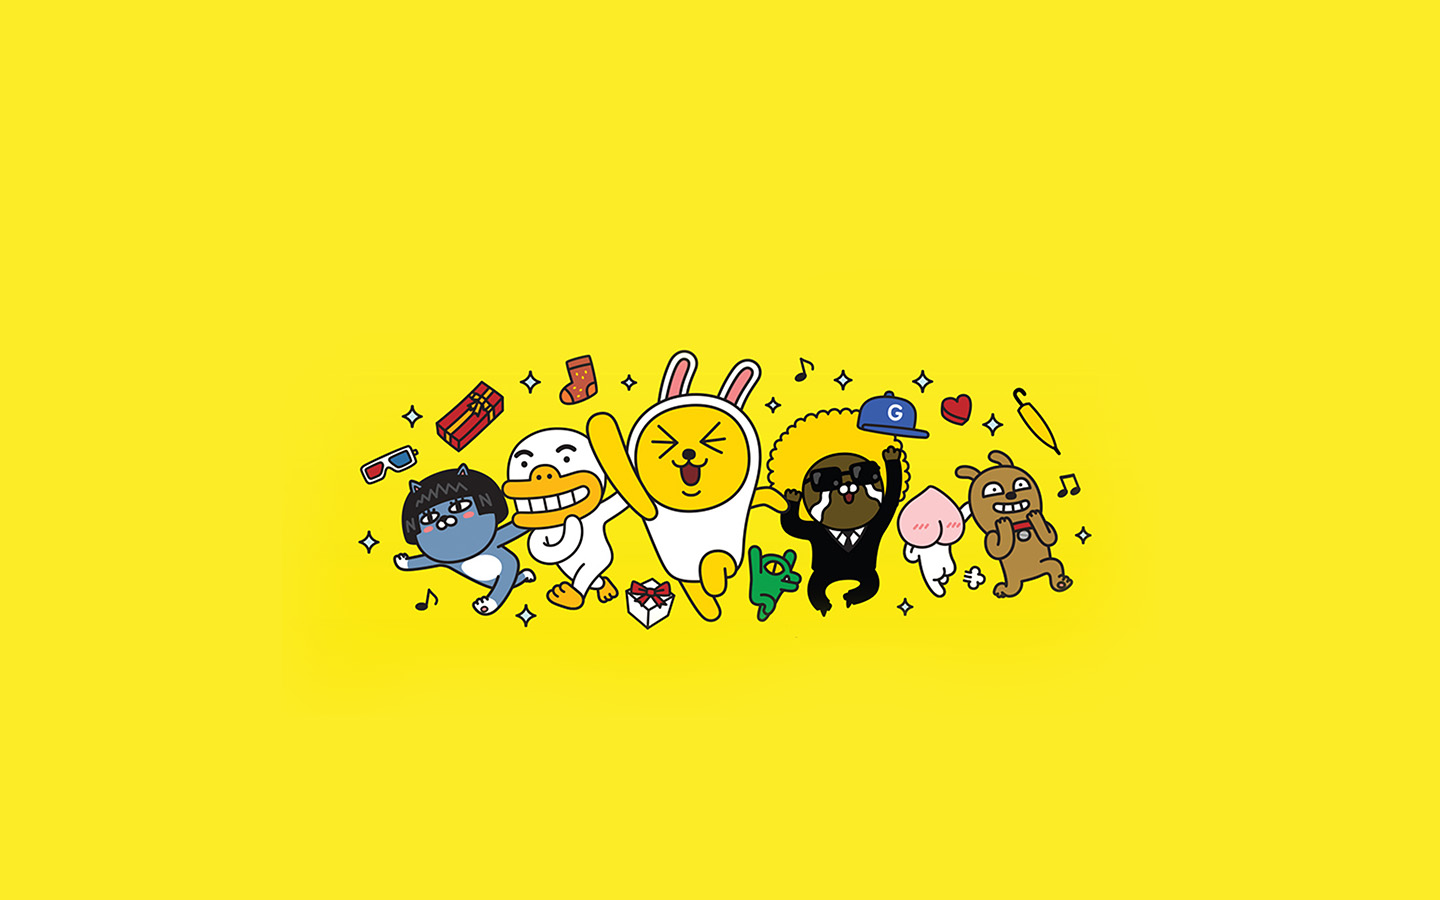 Simple Cute Iphone Wallpapers Bc88 Kakao Yellow Friends Anime Art Illustration Wallpaper